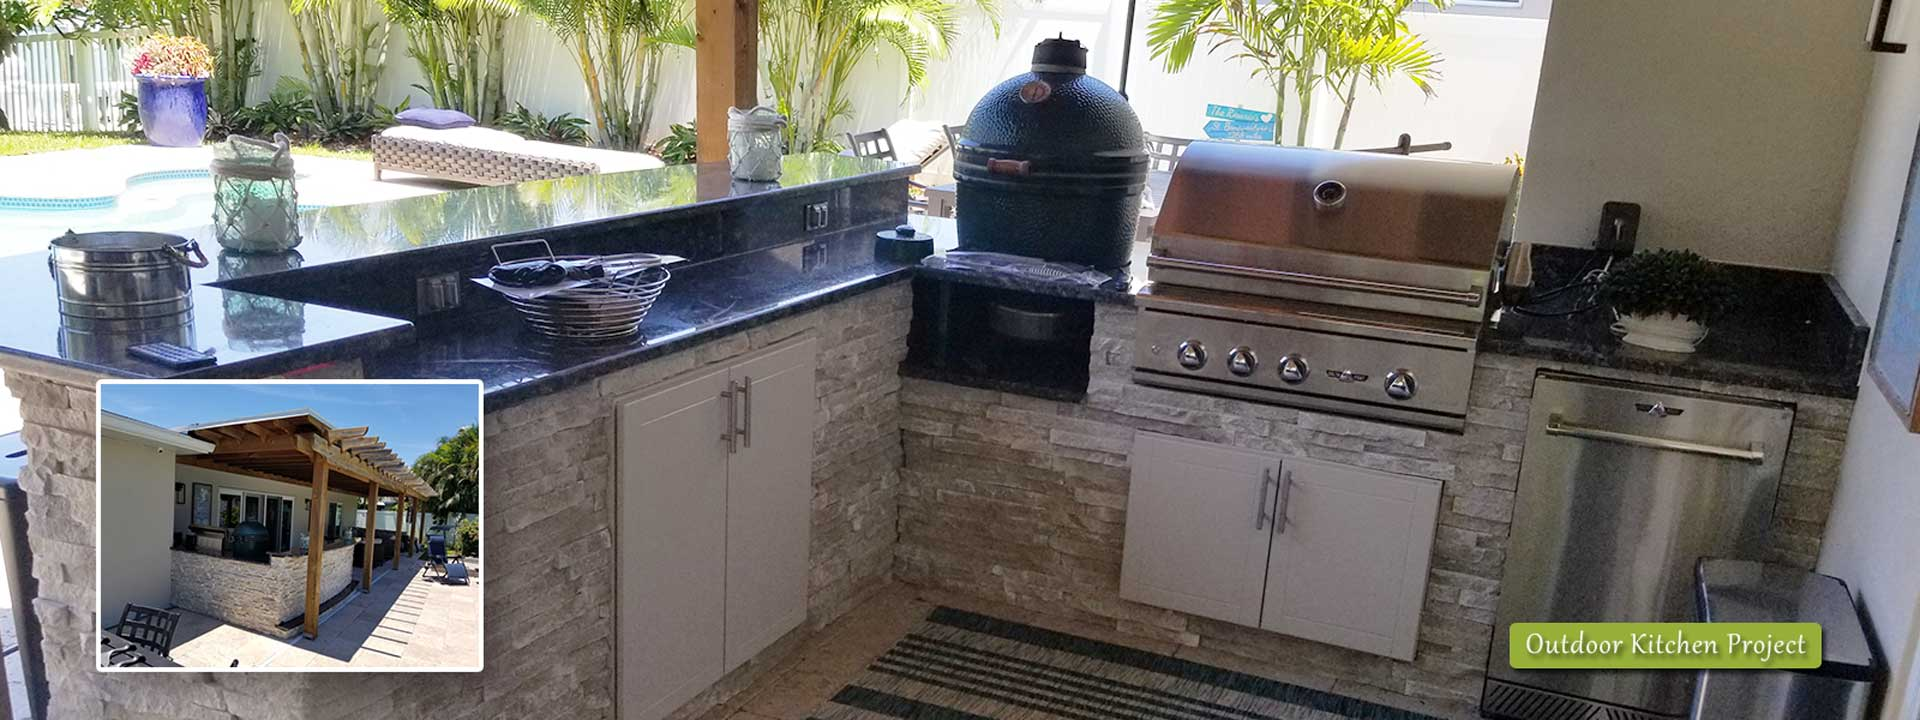 Rosario Outdoor Kitchen Project